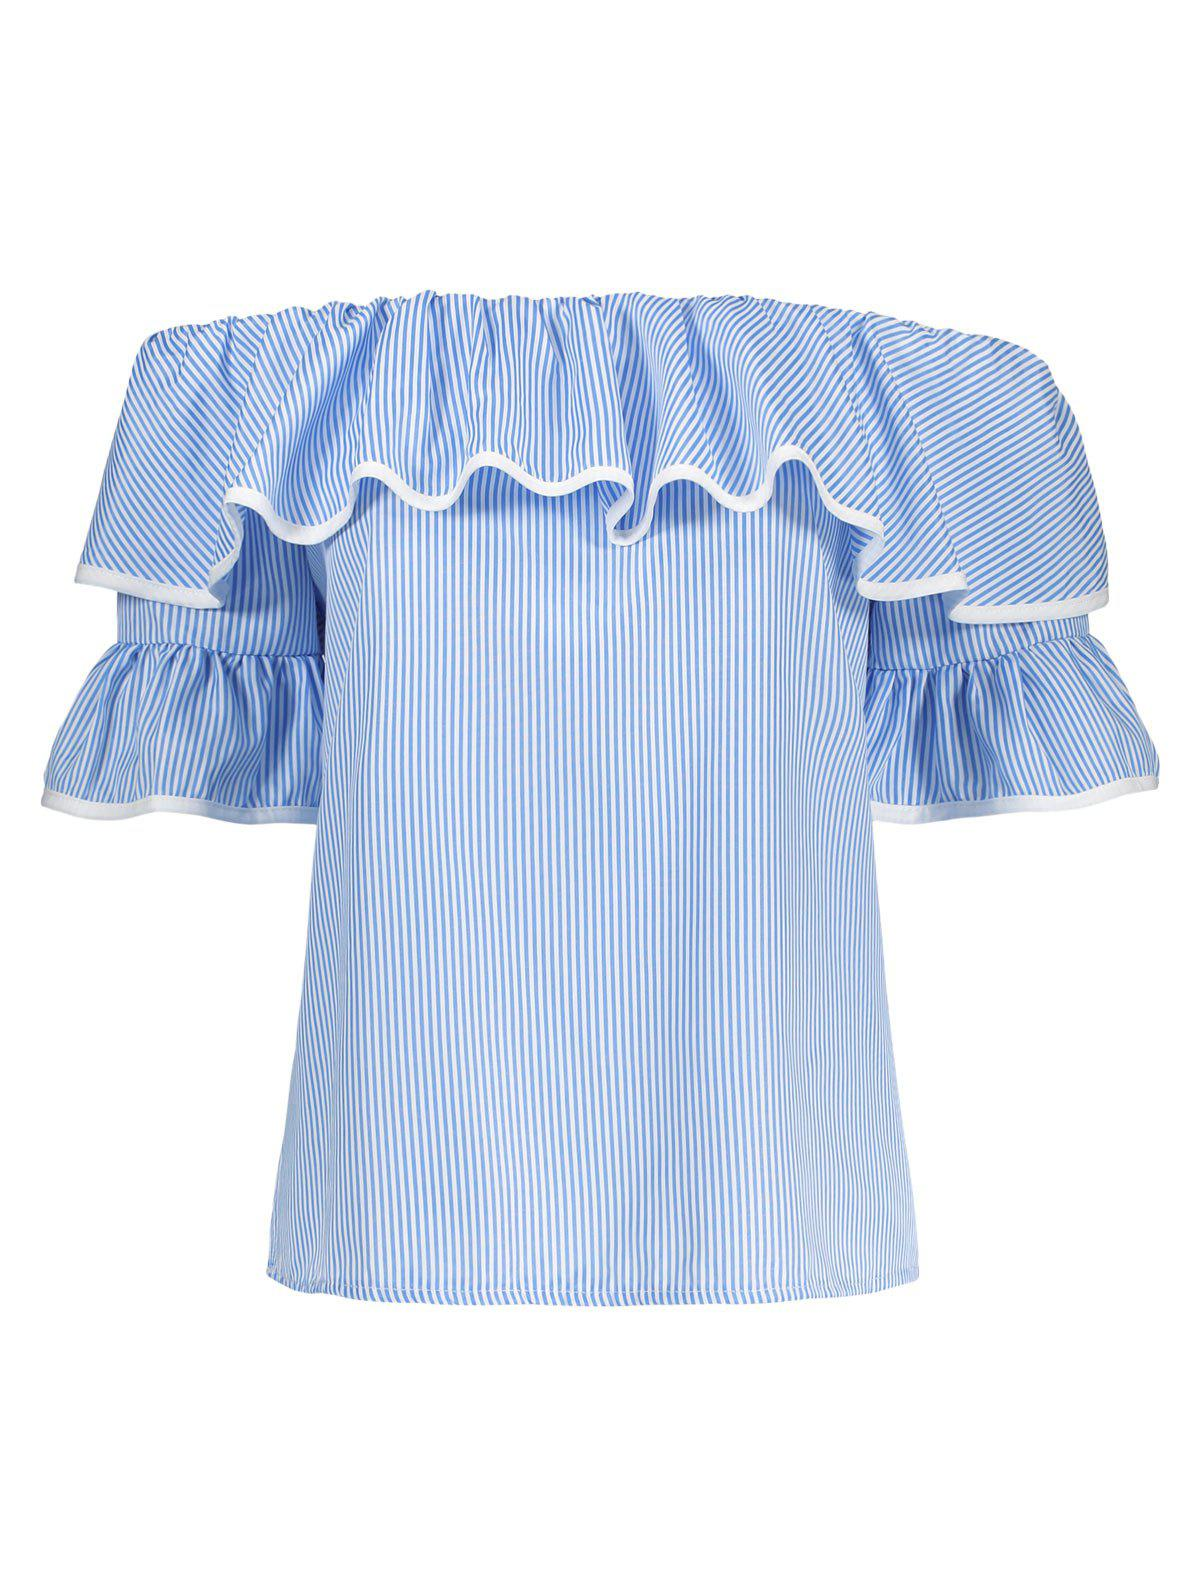 Bell Sleeves Off The Shoulder Top - BLUE M